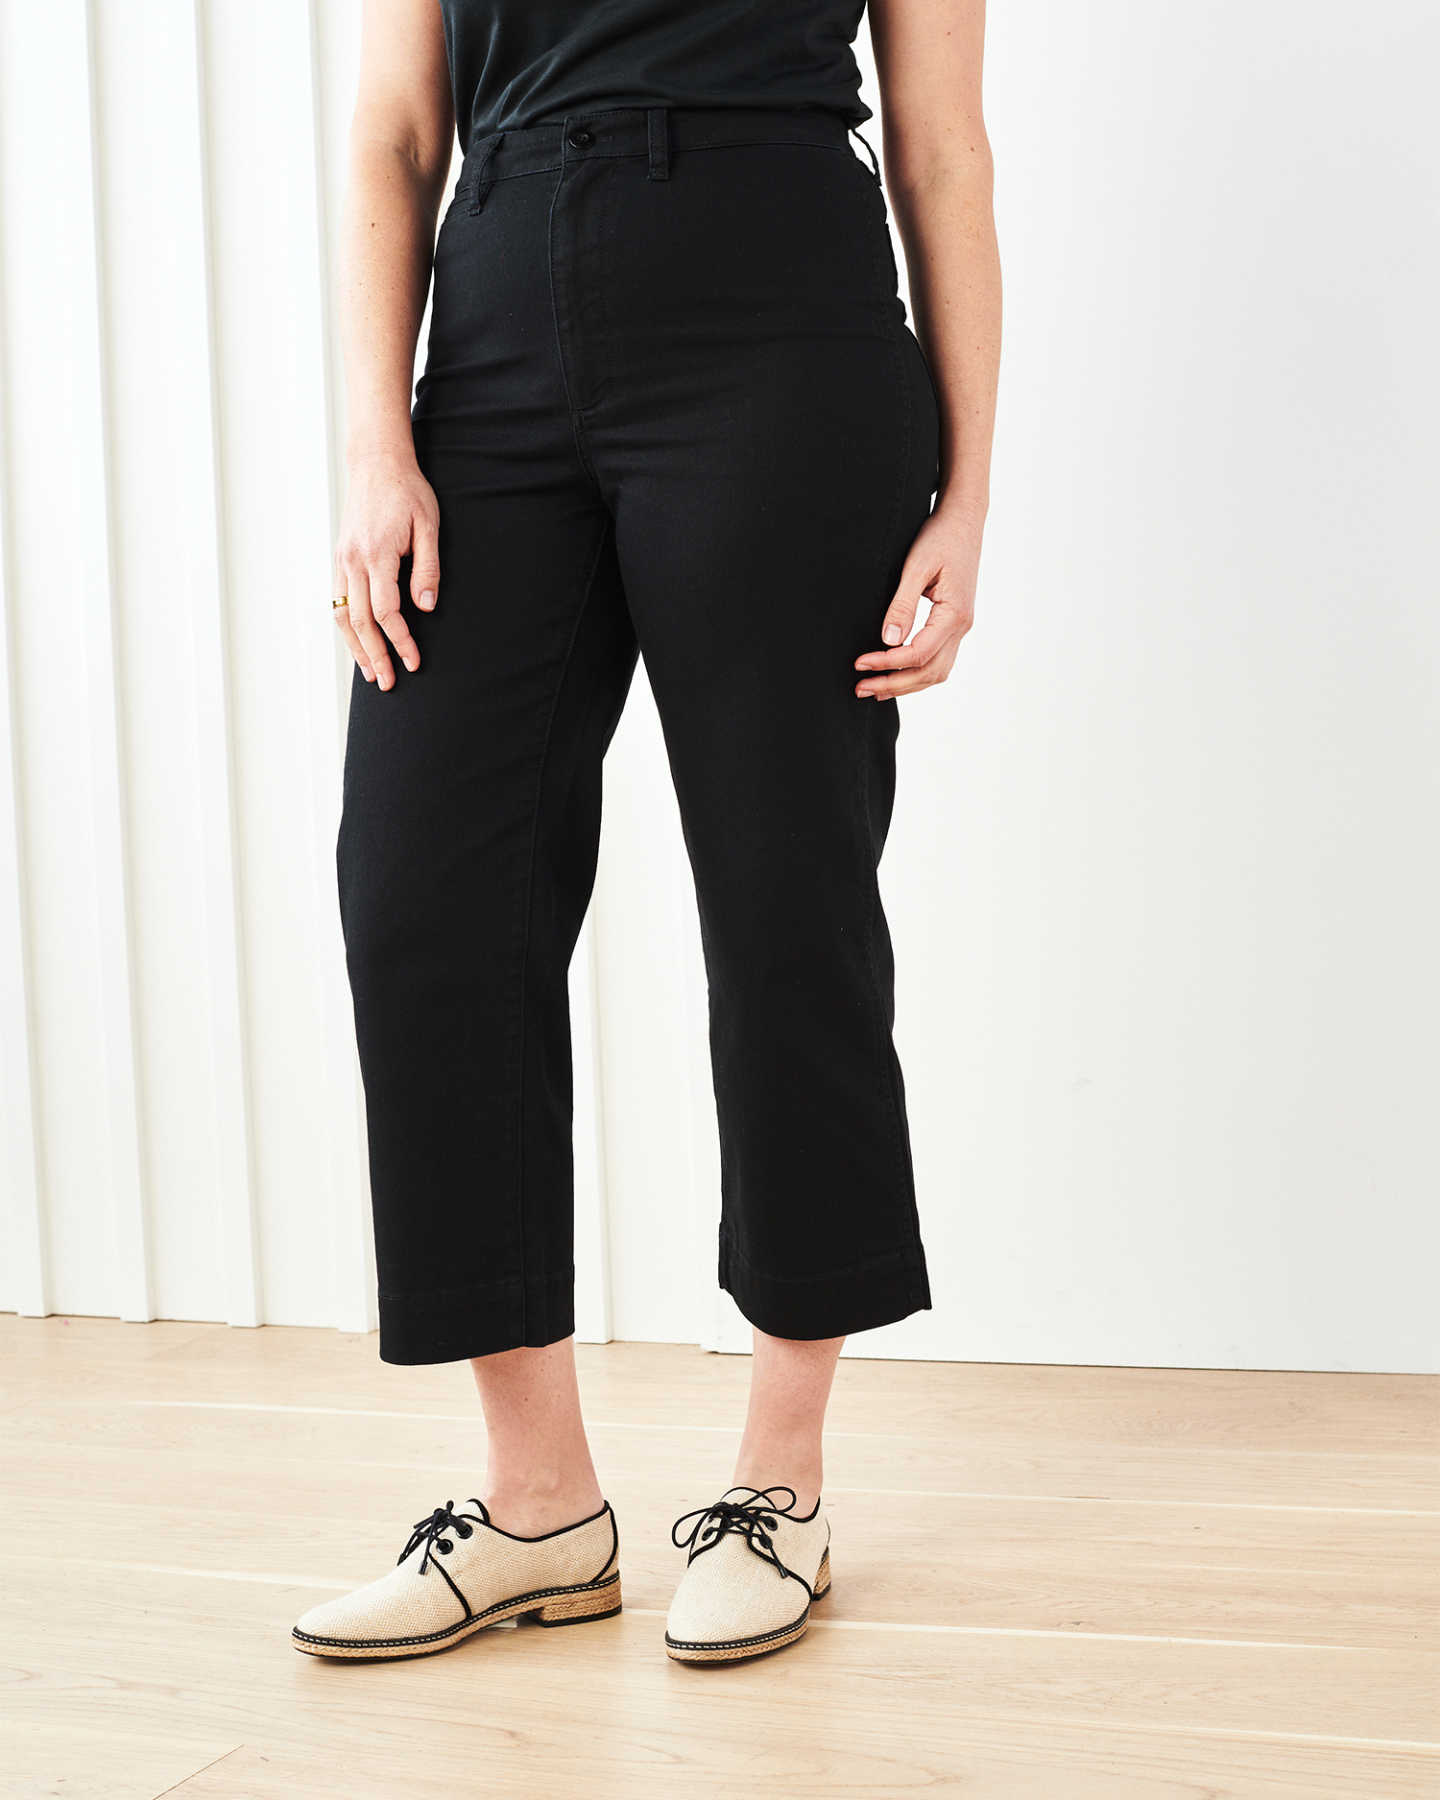 Stretch Cotton Twill Wide-Leg Crop Pant - Black - 9